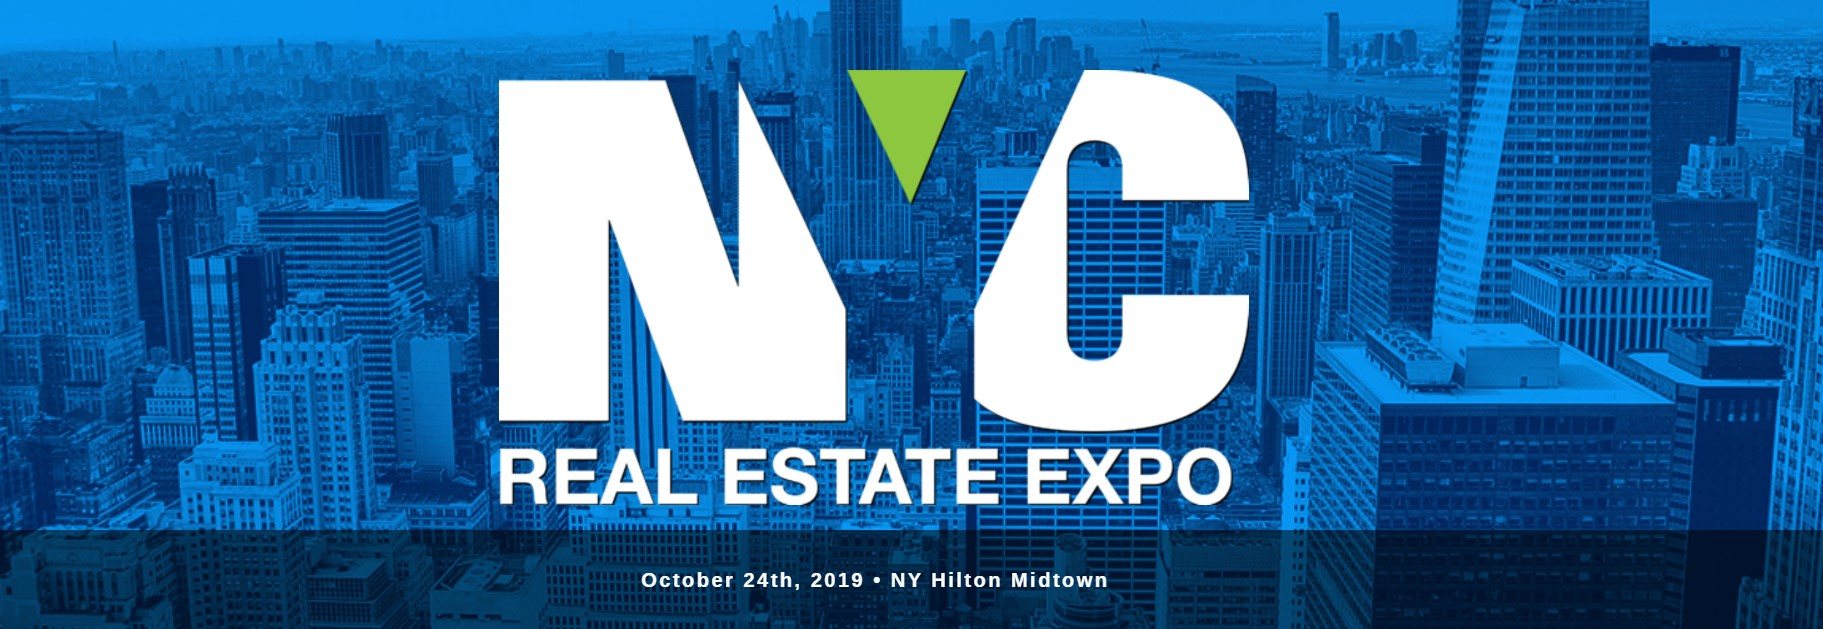 NYC Real Estate Expo Banner